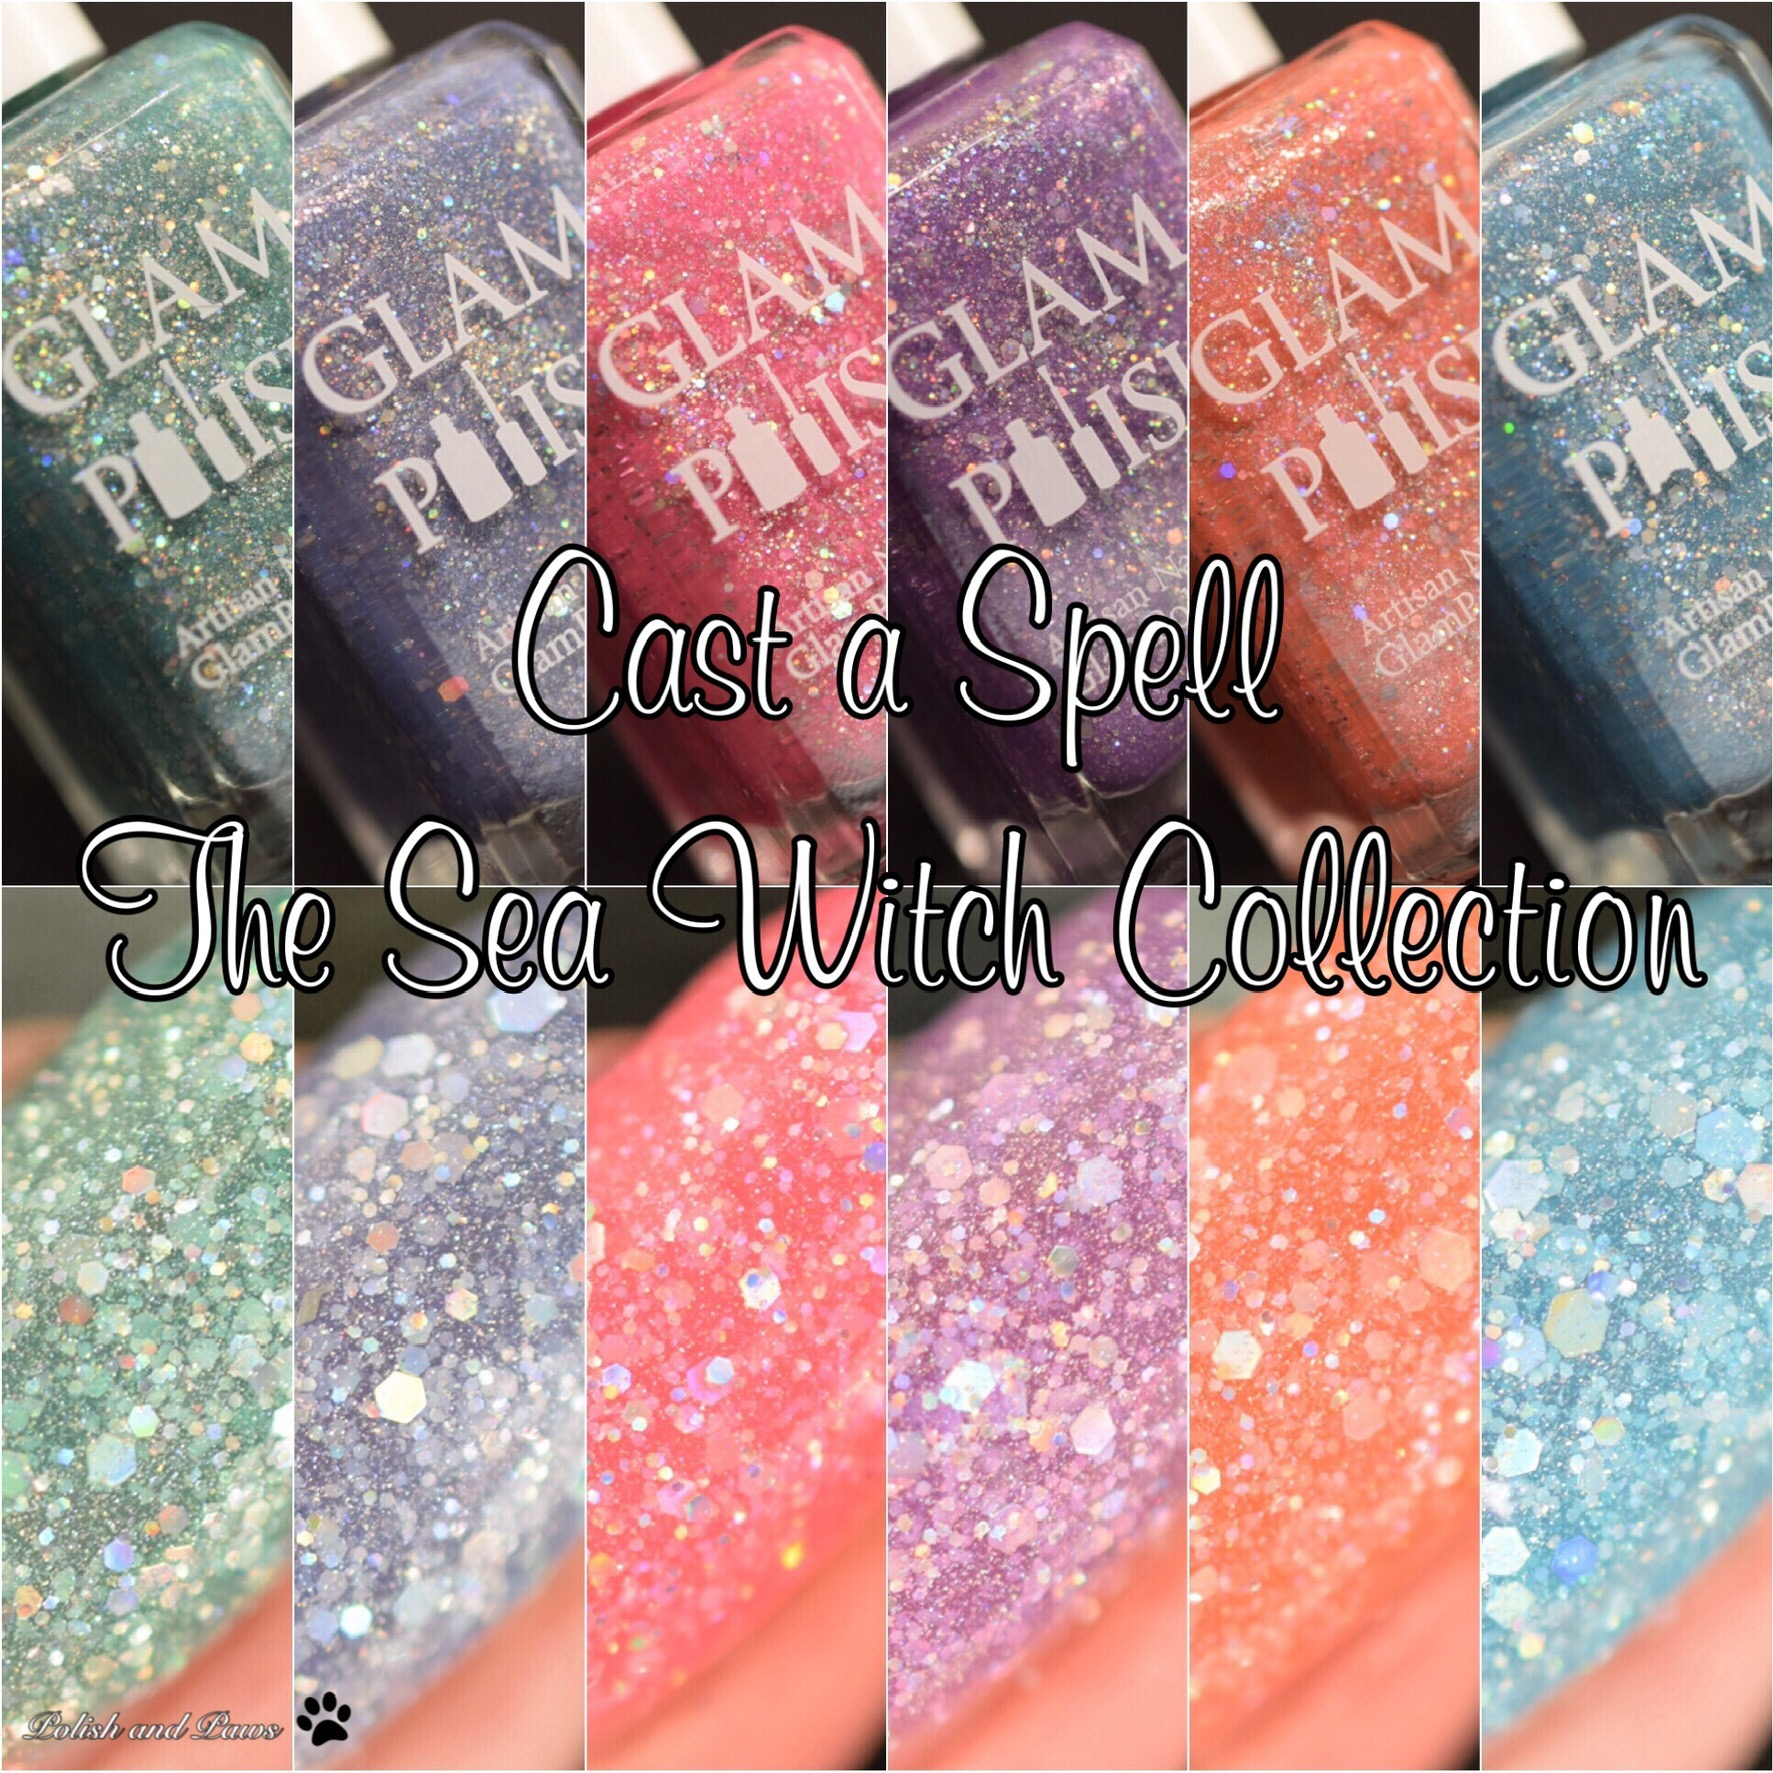 Glam Polish Sea Witch collection